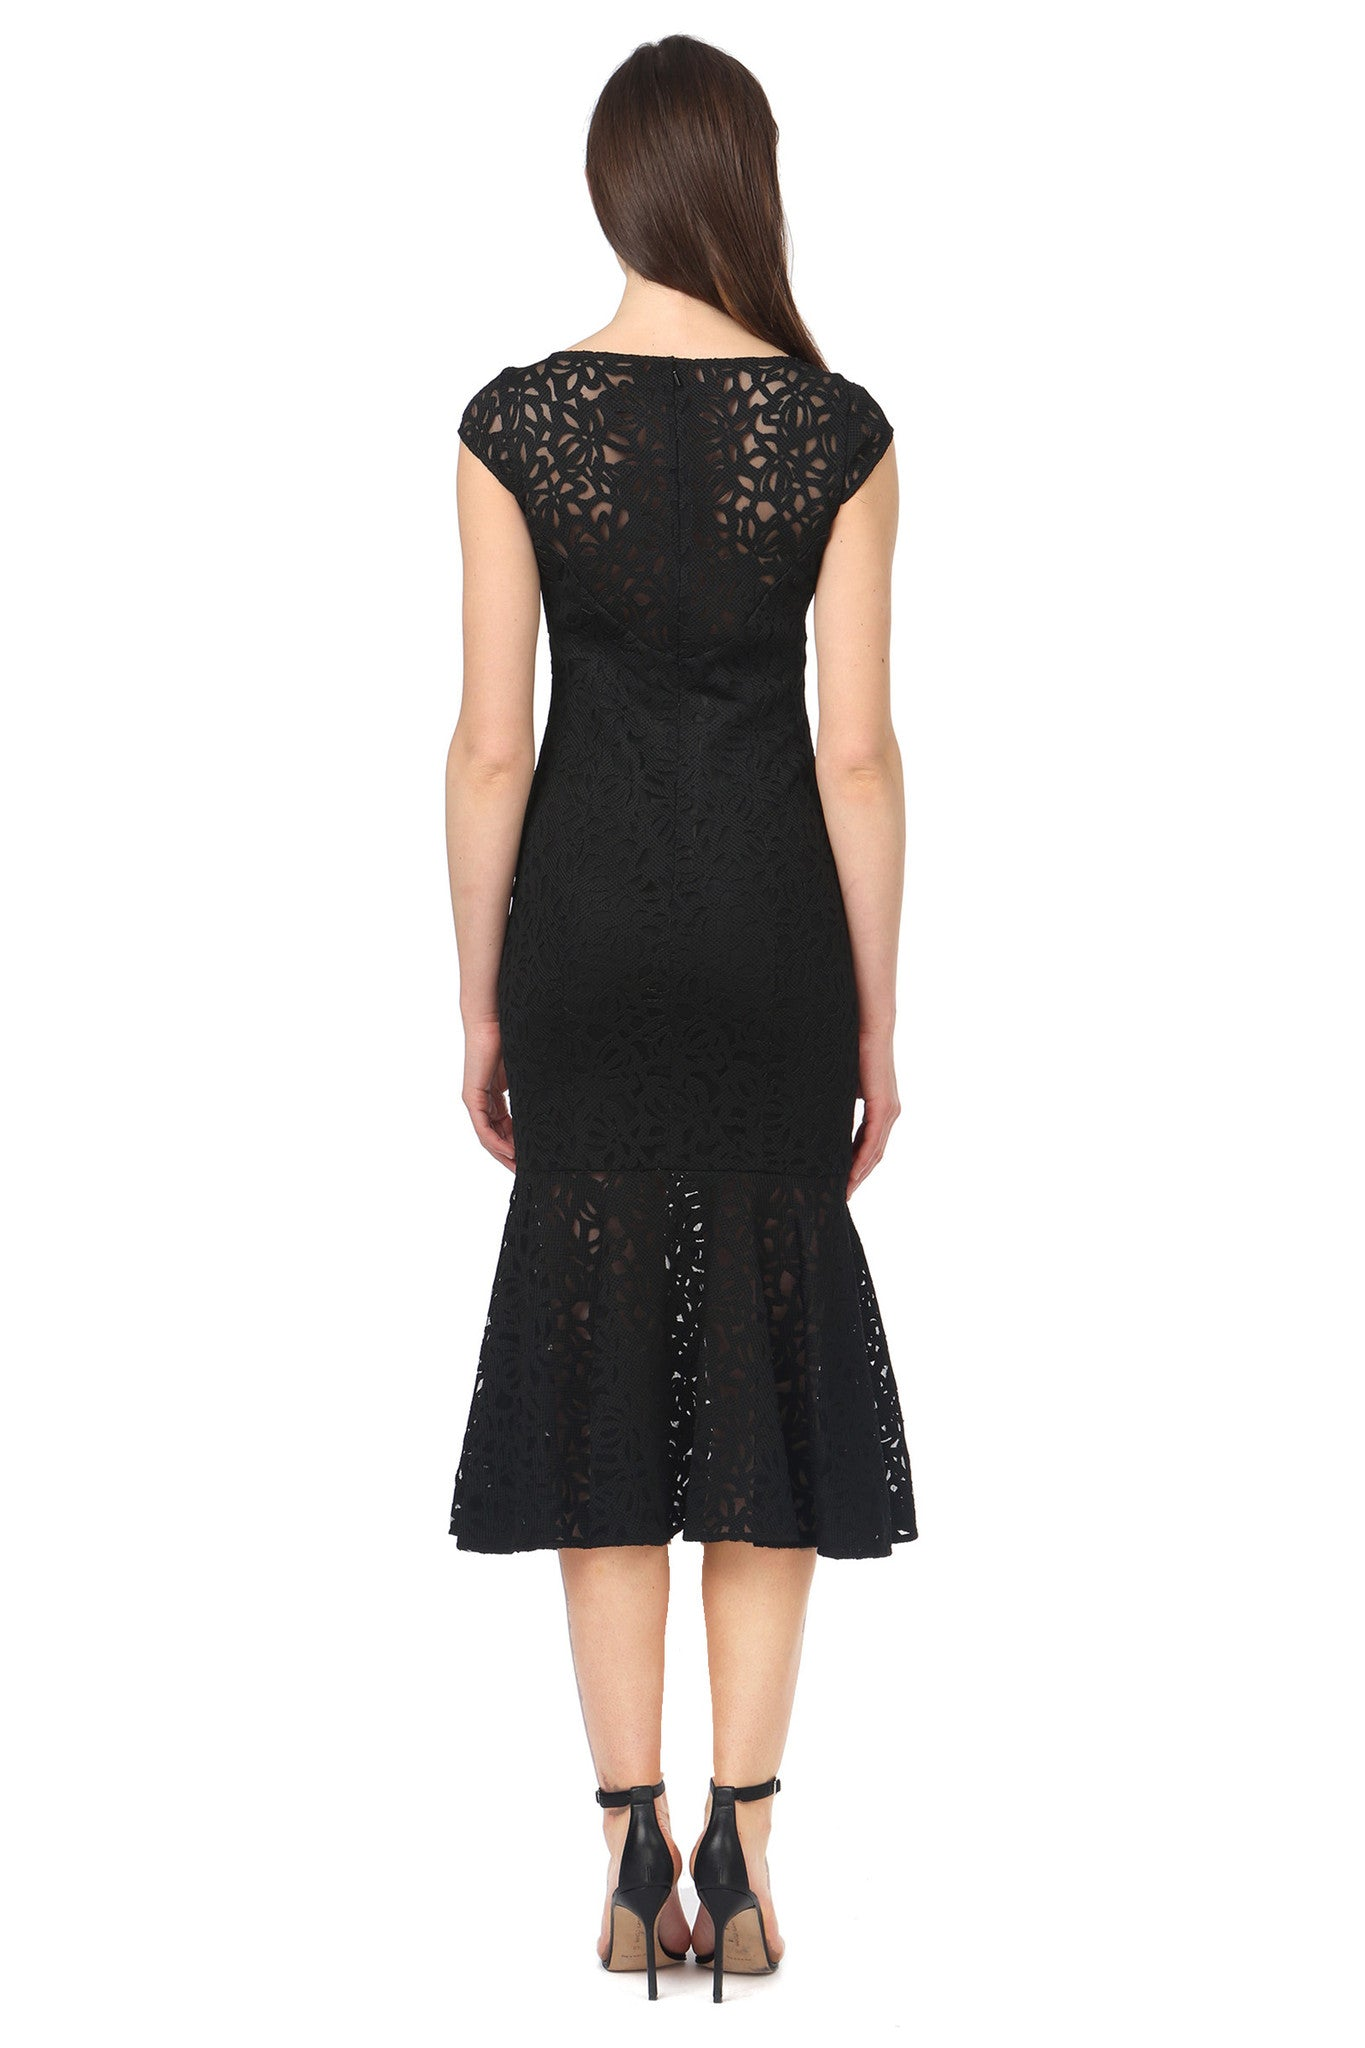 Jay Godfrey Cap-Sleeve Black Lace Dress - Back View